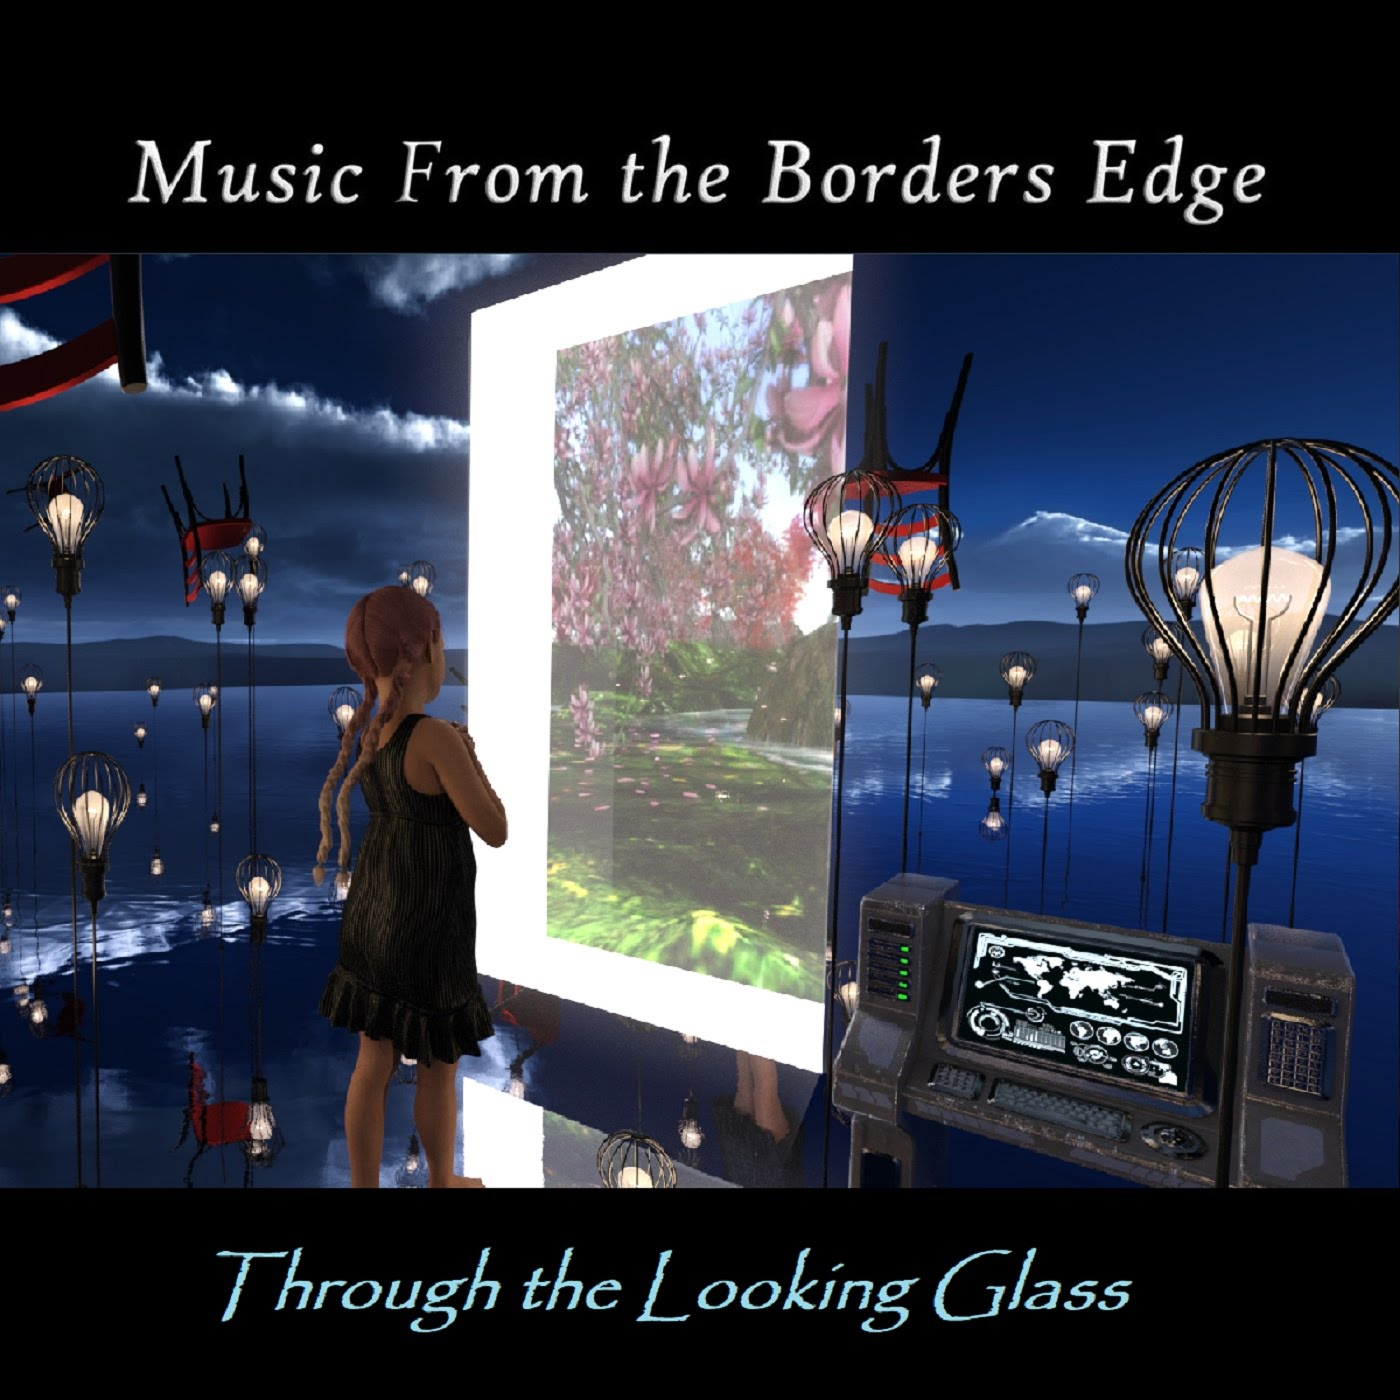 http://www.bordersedge.com/radio/music-from-the-borders-edge/minerva-highlightingthewomenofthesequentialdreamsproject